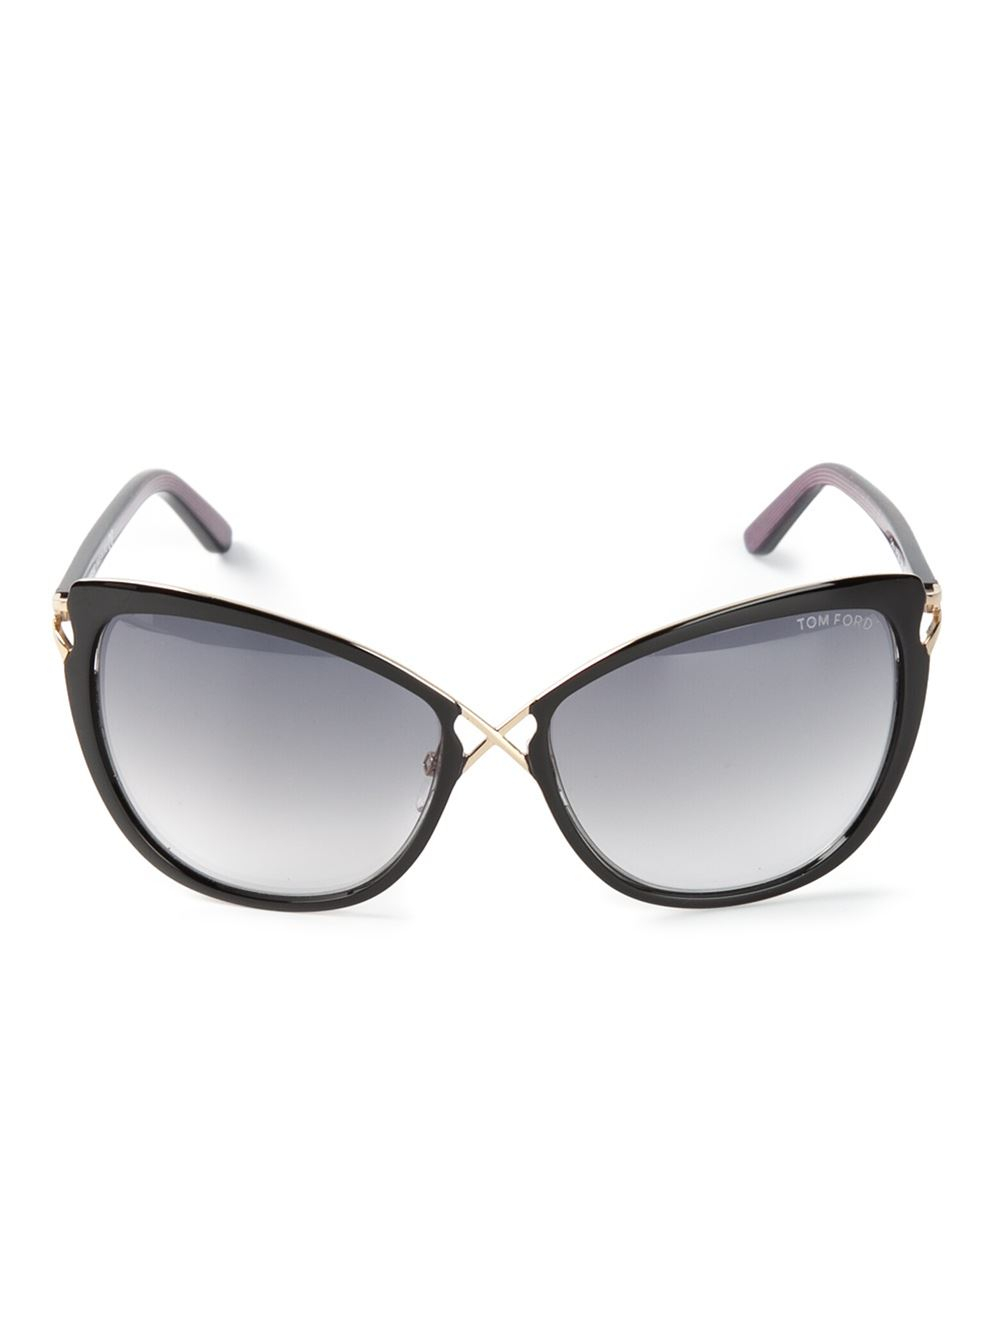 tom ford daria crossover cat eye sunglasses in black lyst. Cars Review. Best American Auto & Cars Review